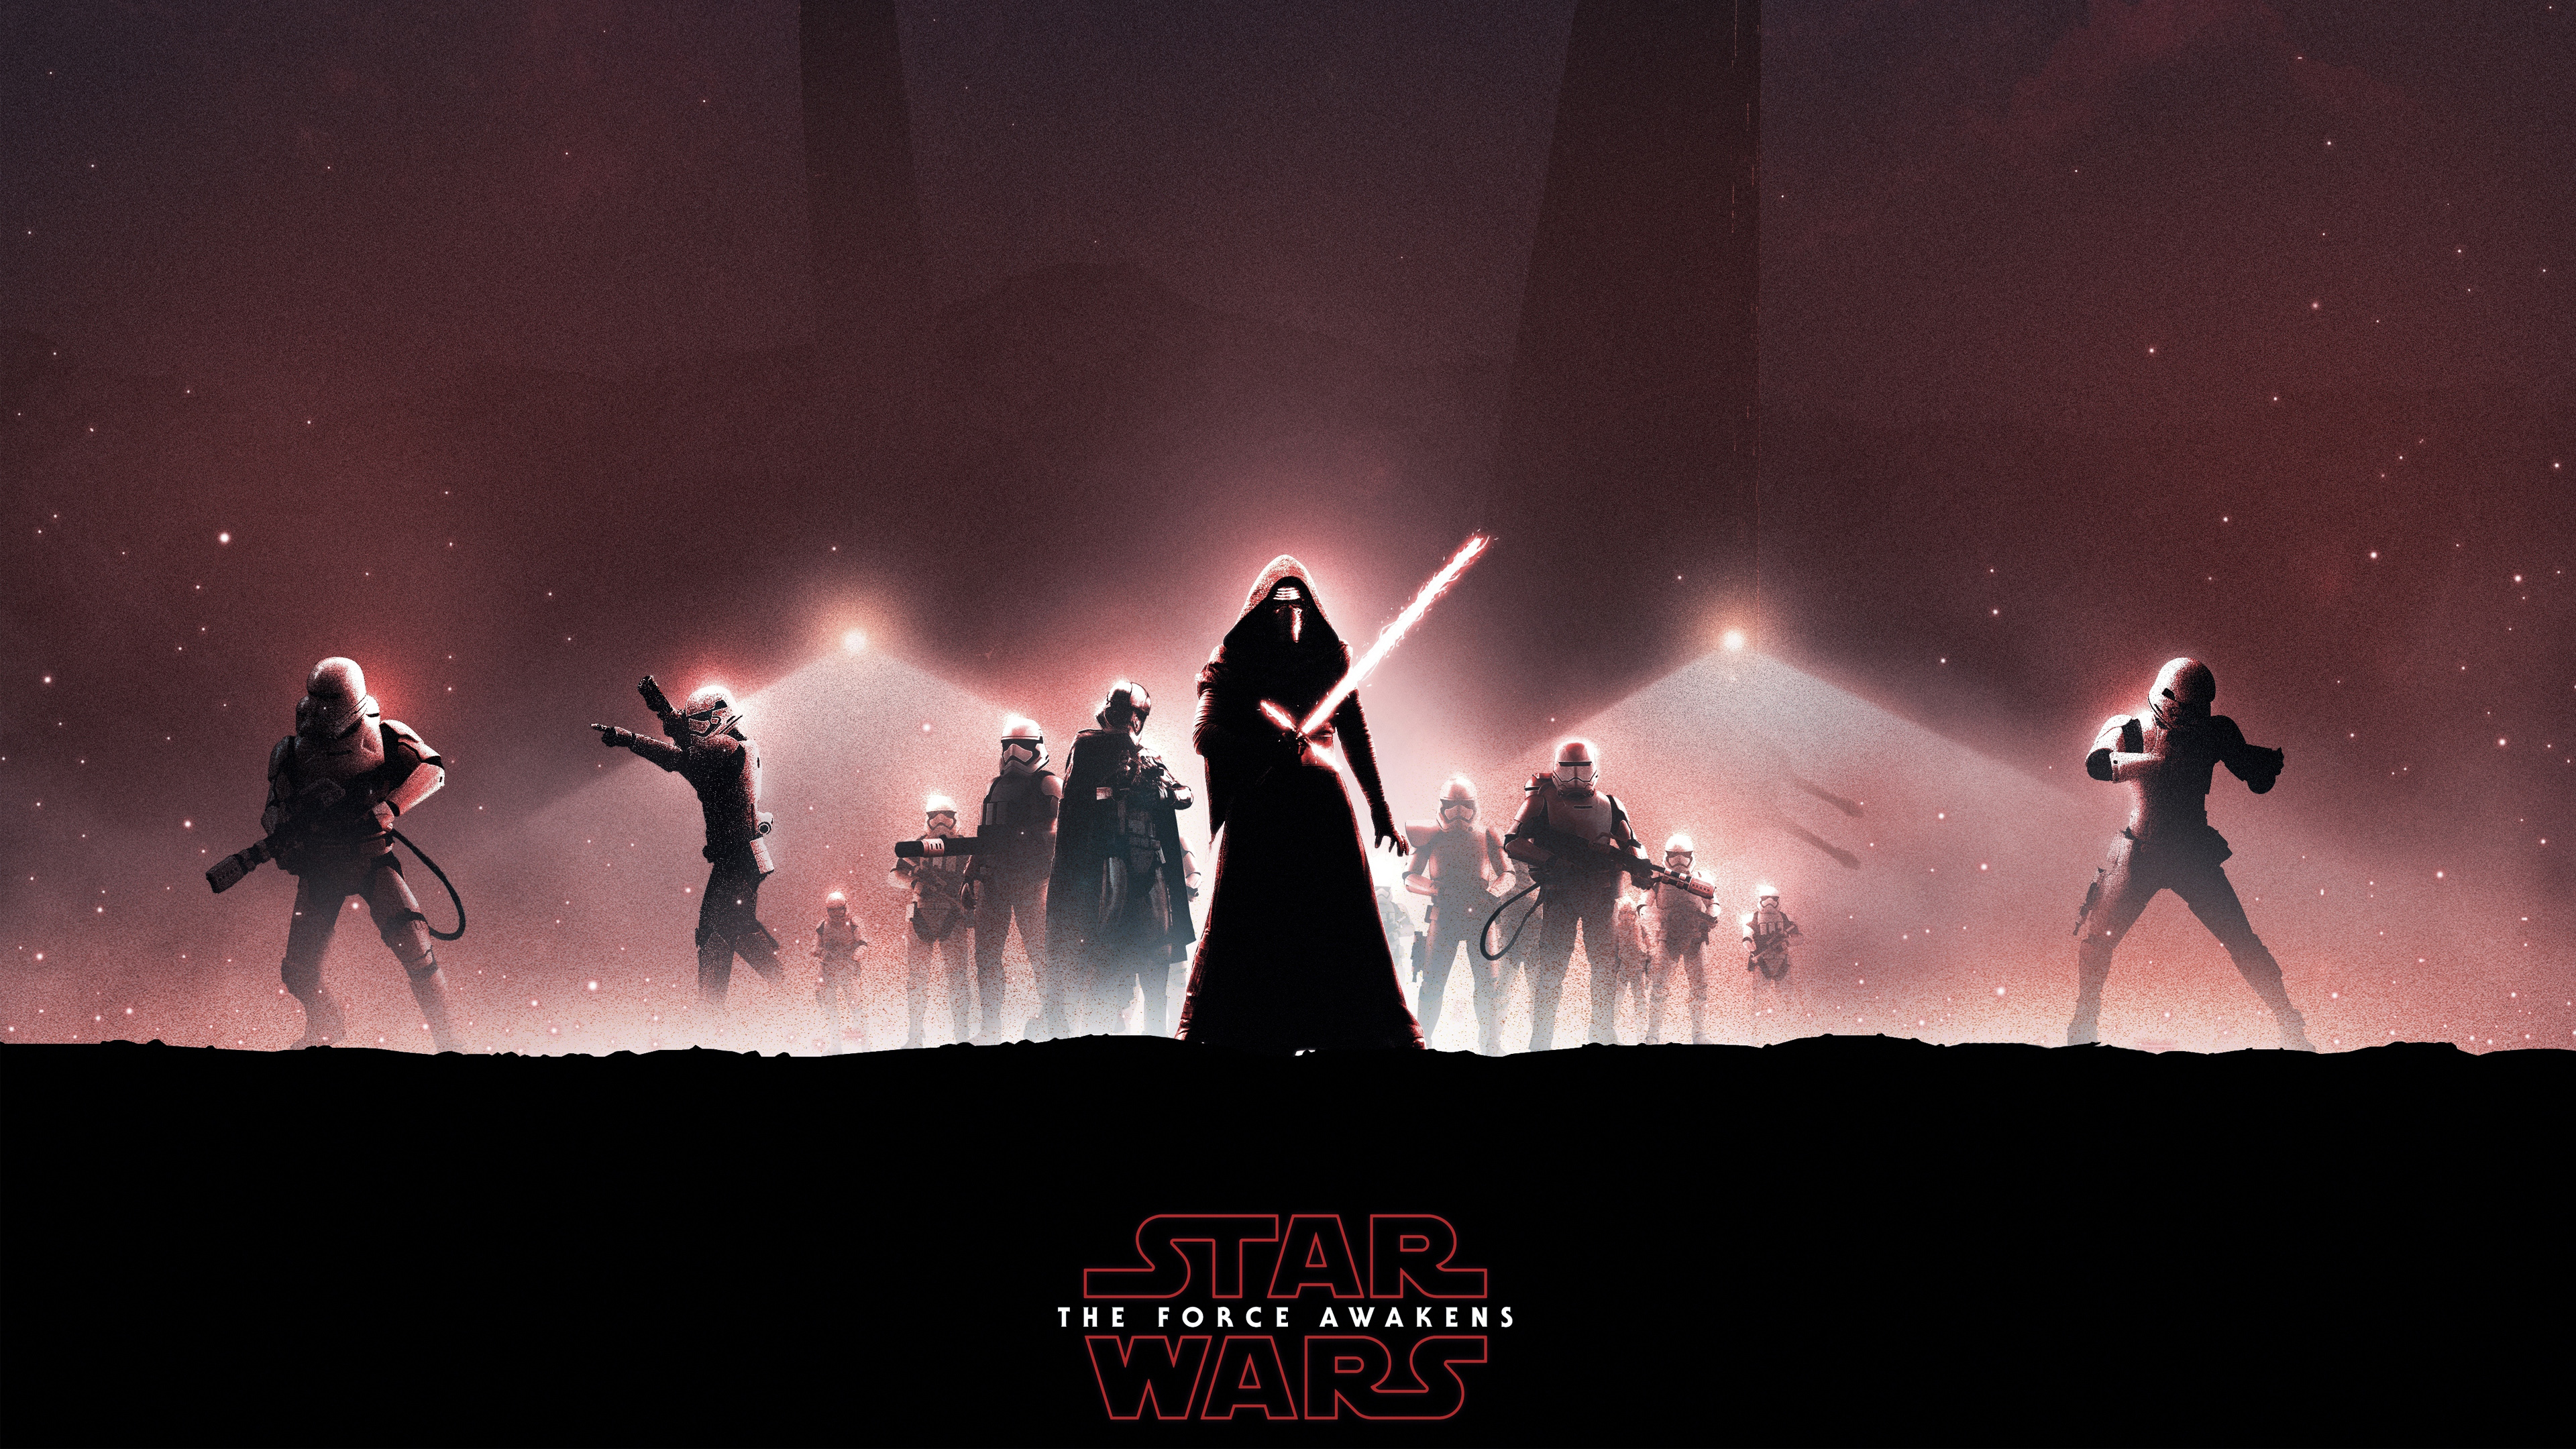 Kylo Ren The Force Awakens Wallpapers: Page 3 Of Force Wallpapers, Photos And Desktop Backgrounds